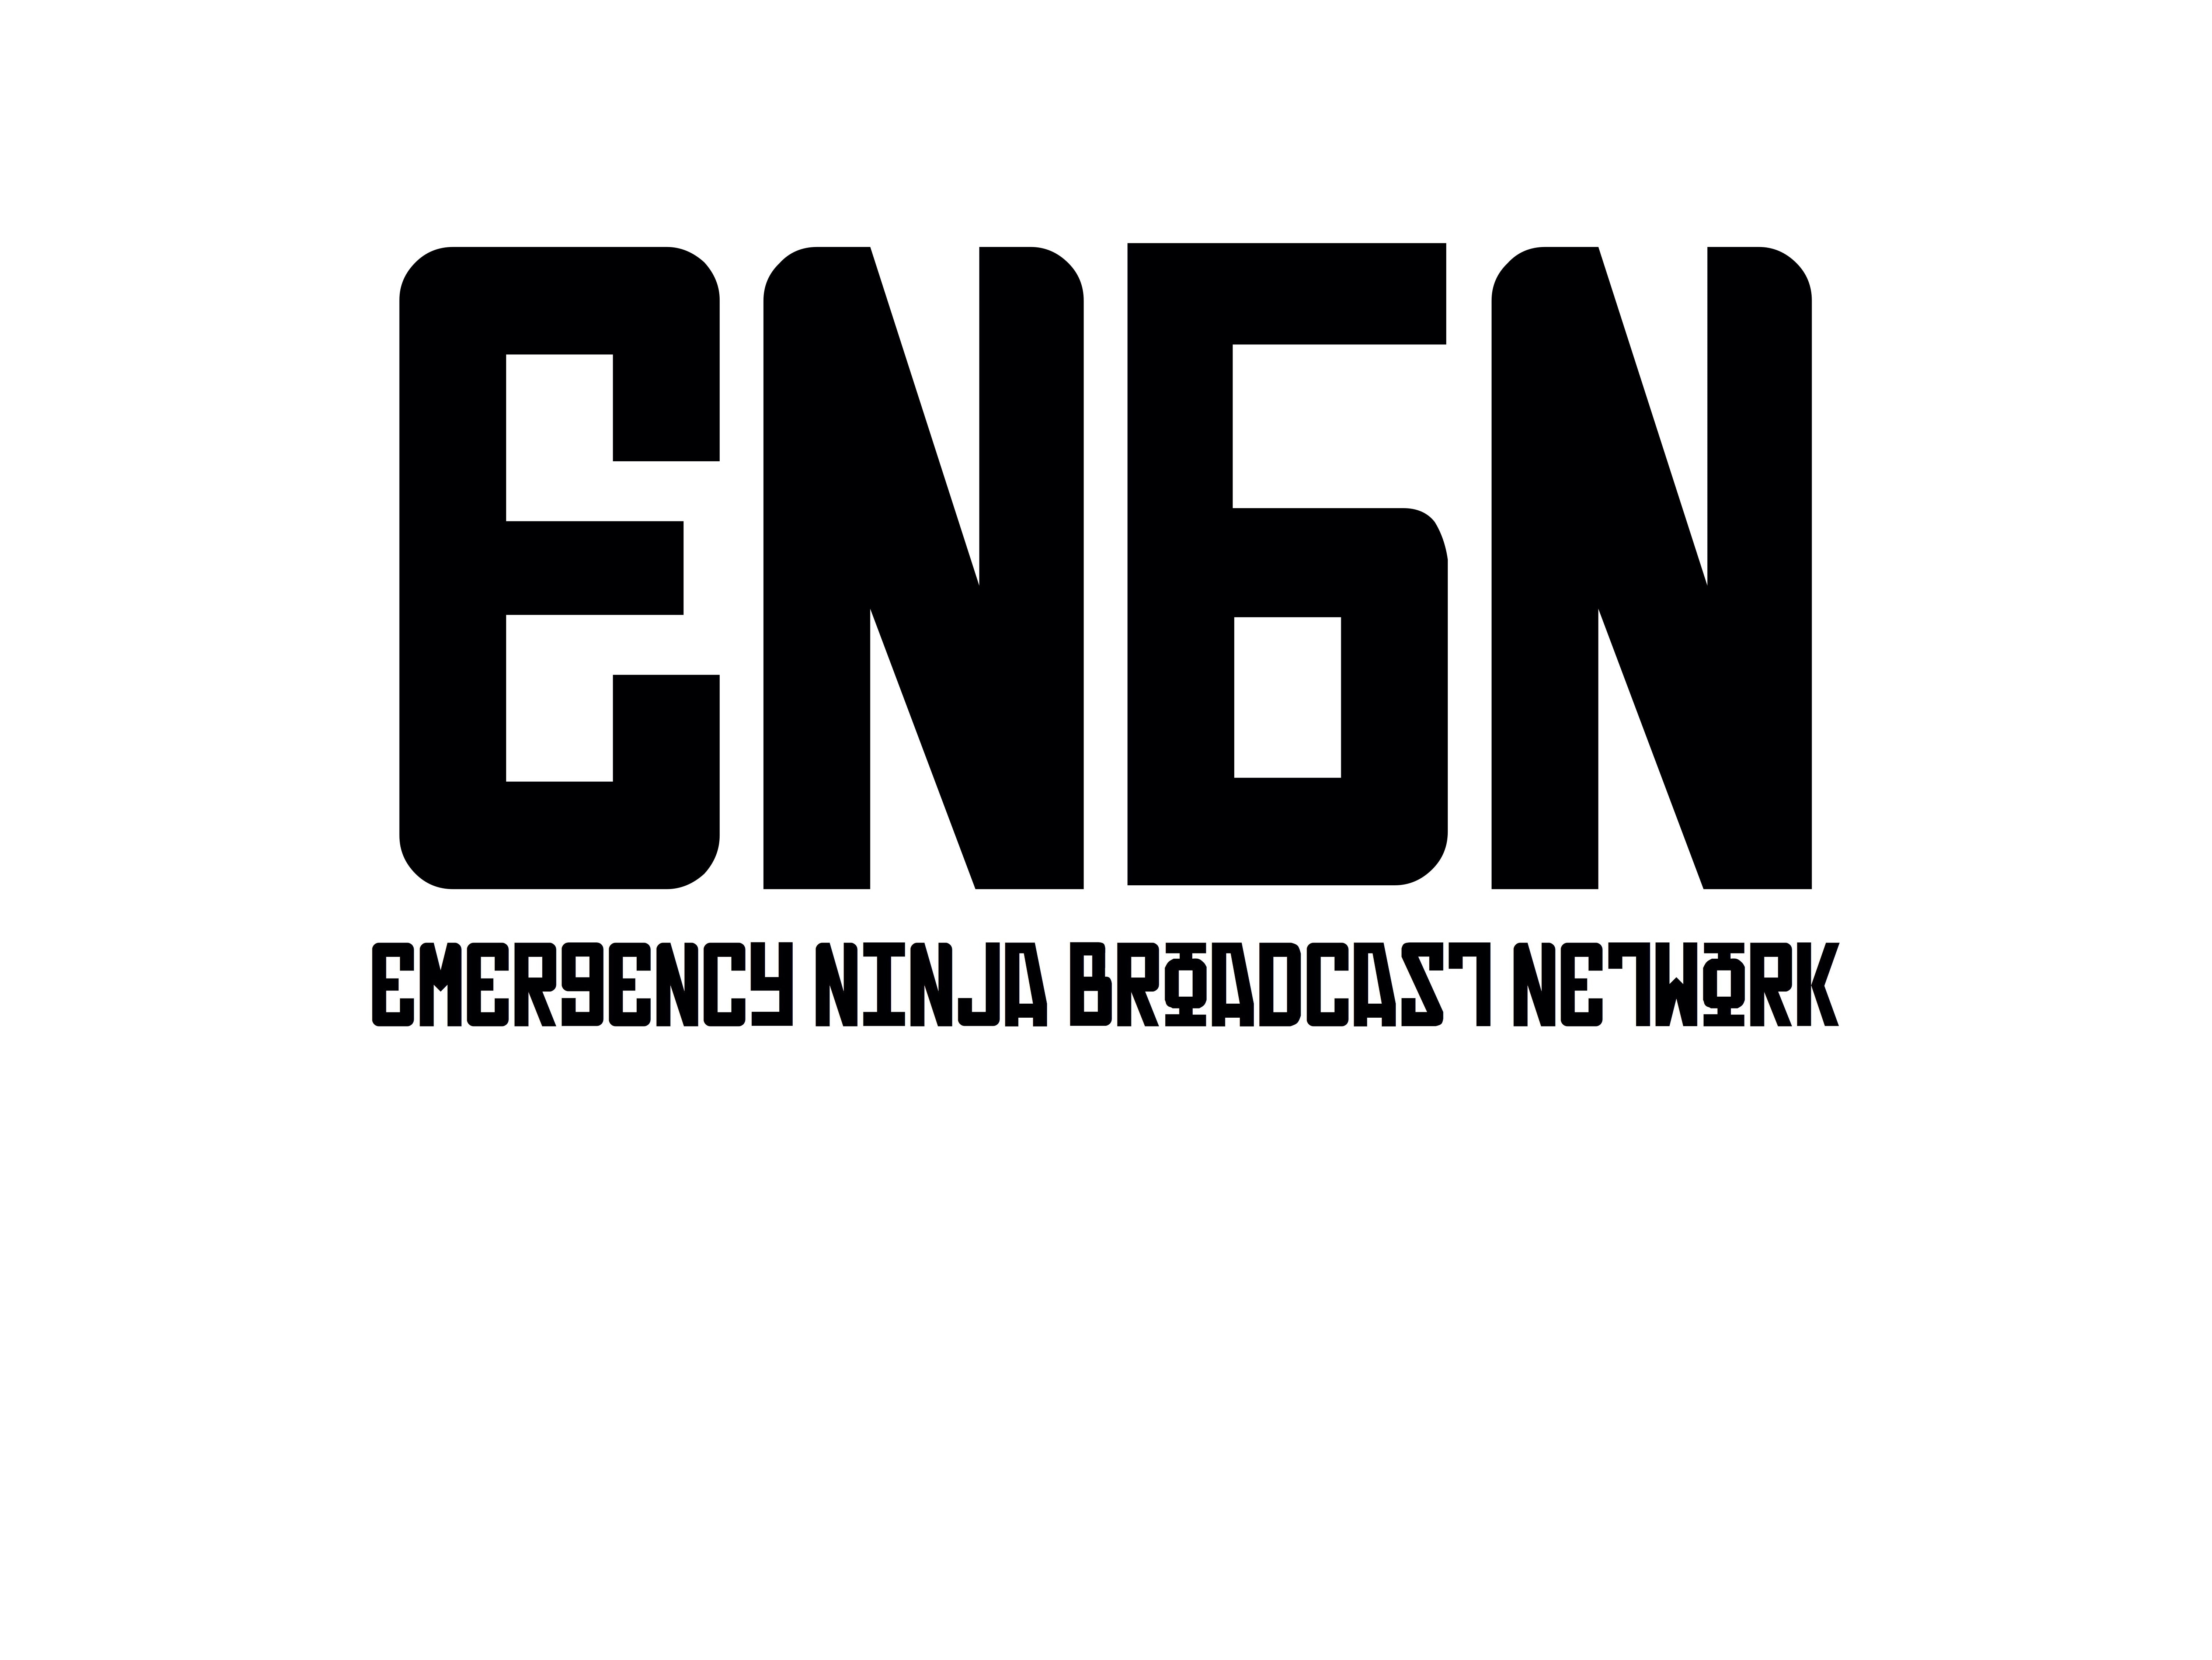 The Emergency Ninja Broadcast Network promo codes